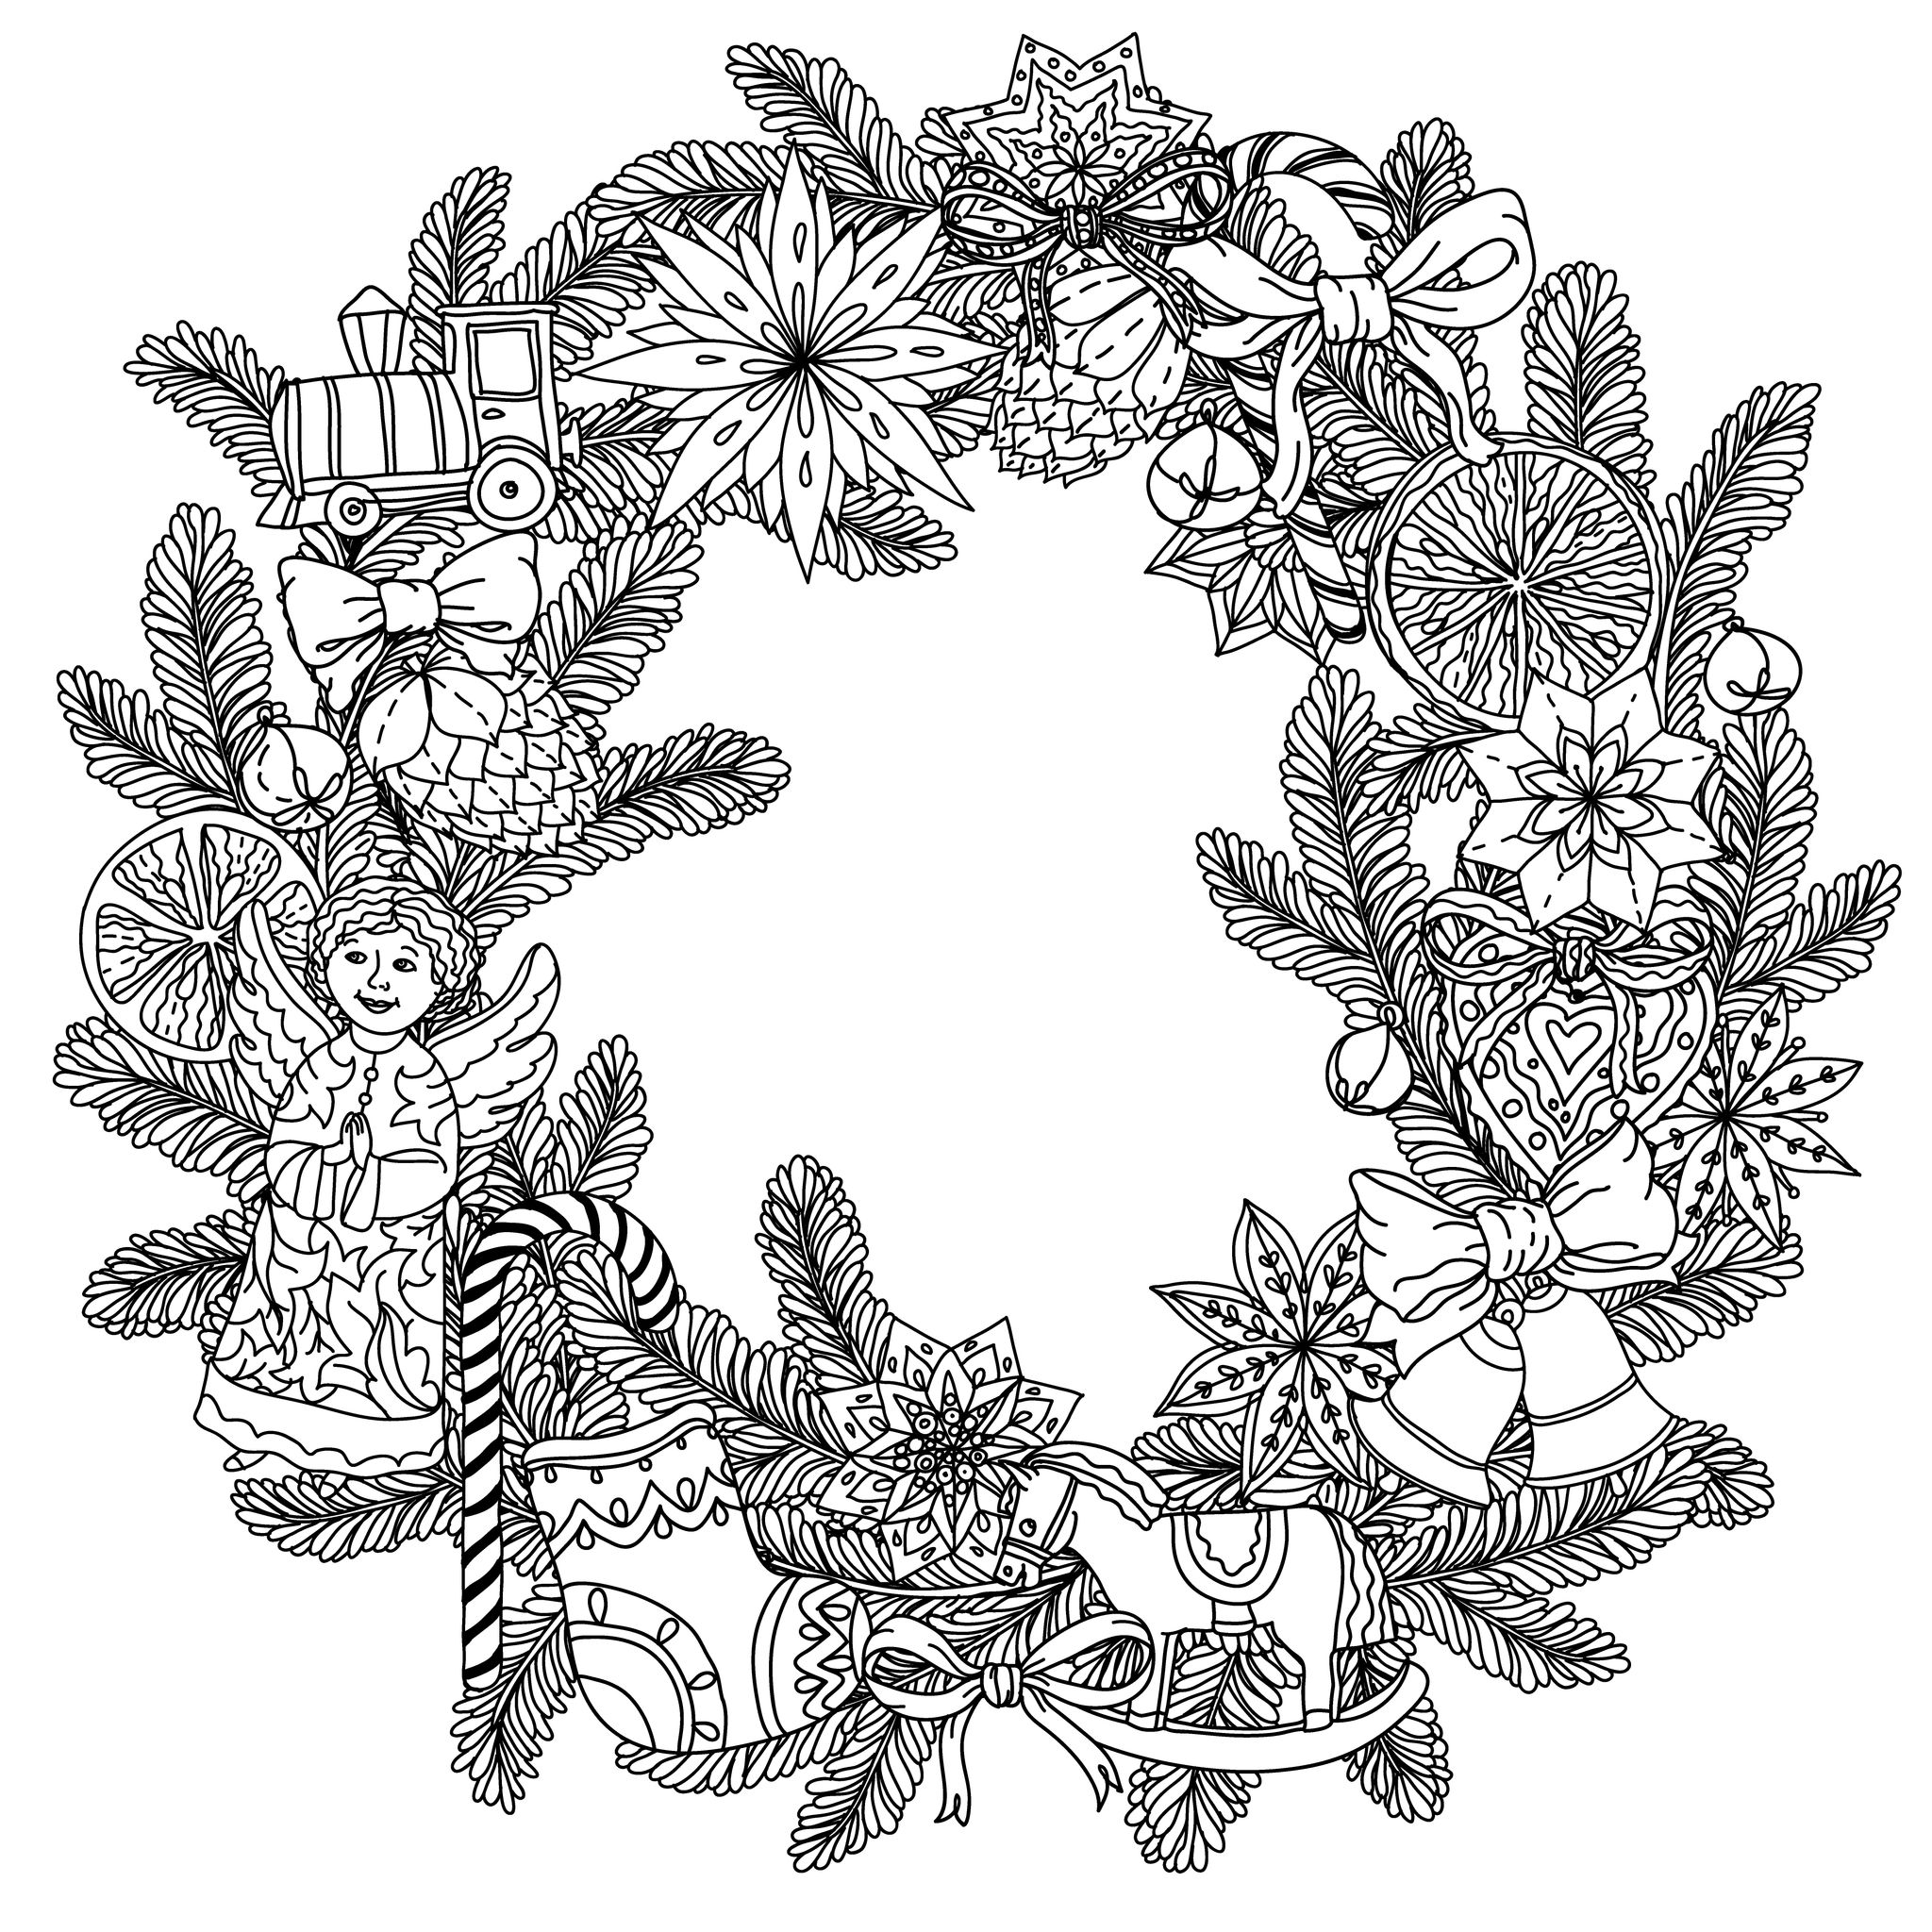 adult coloring pages christmas Christmas wreath   Christmas Adult Coloring Pages adult coloring pages christmas